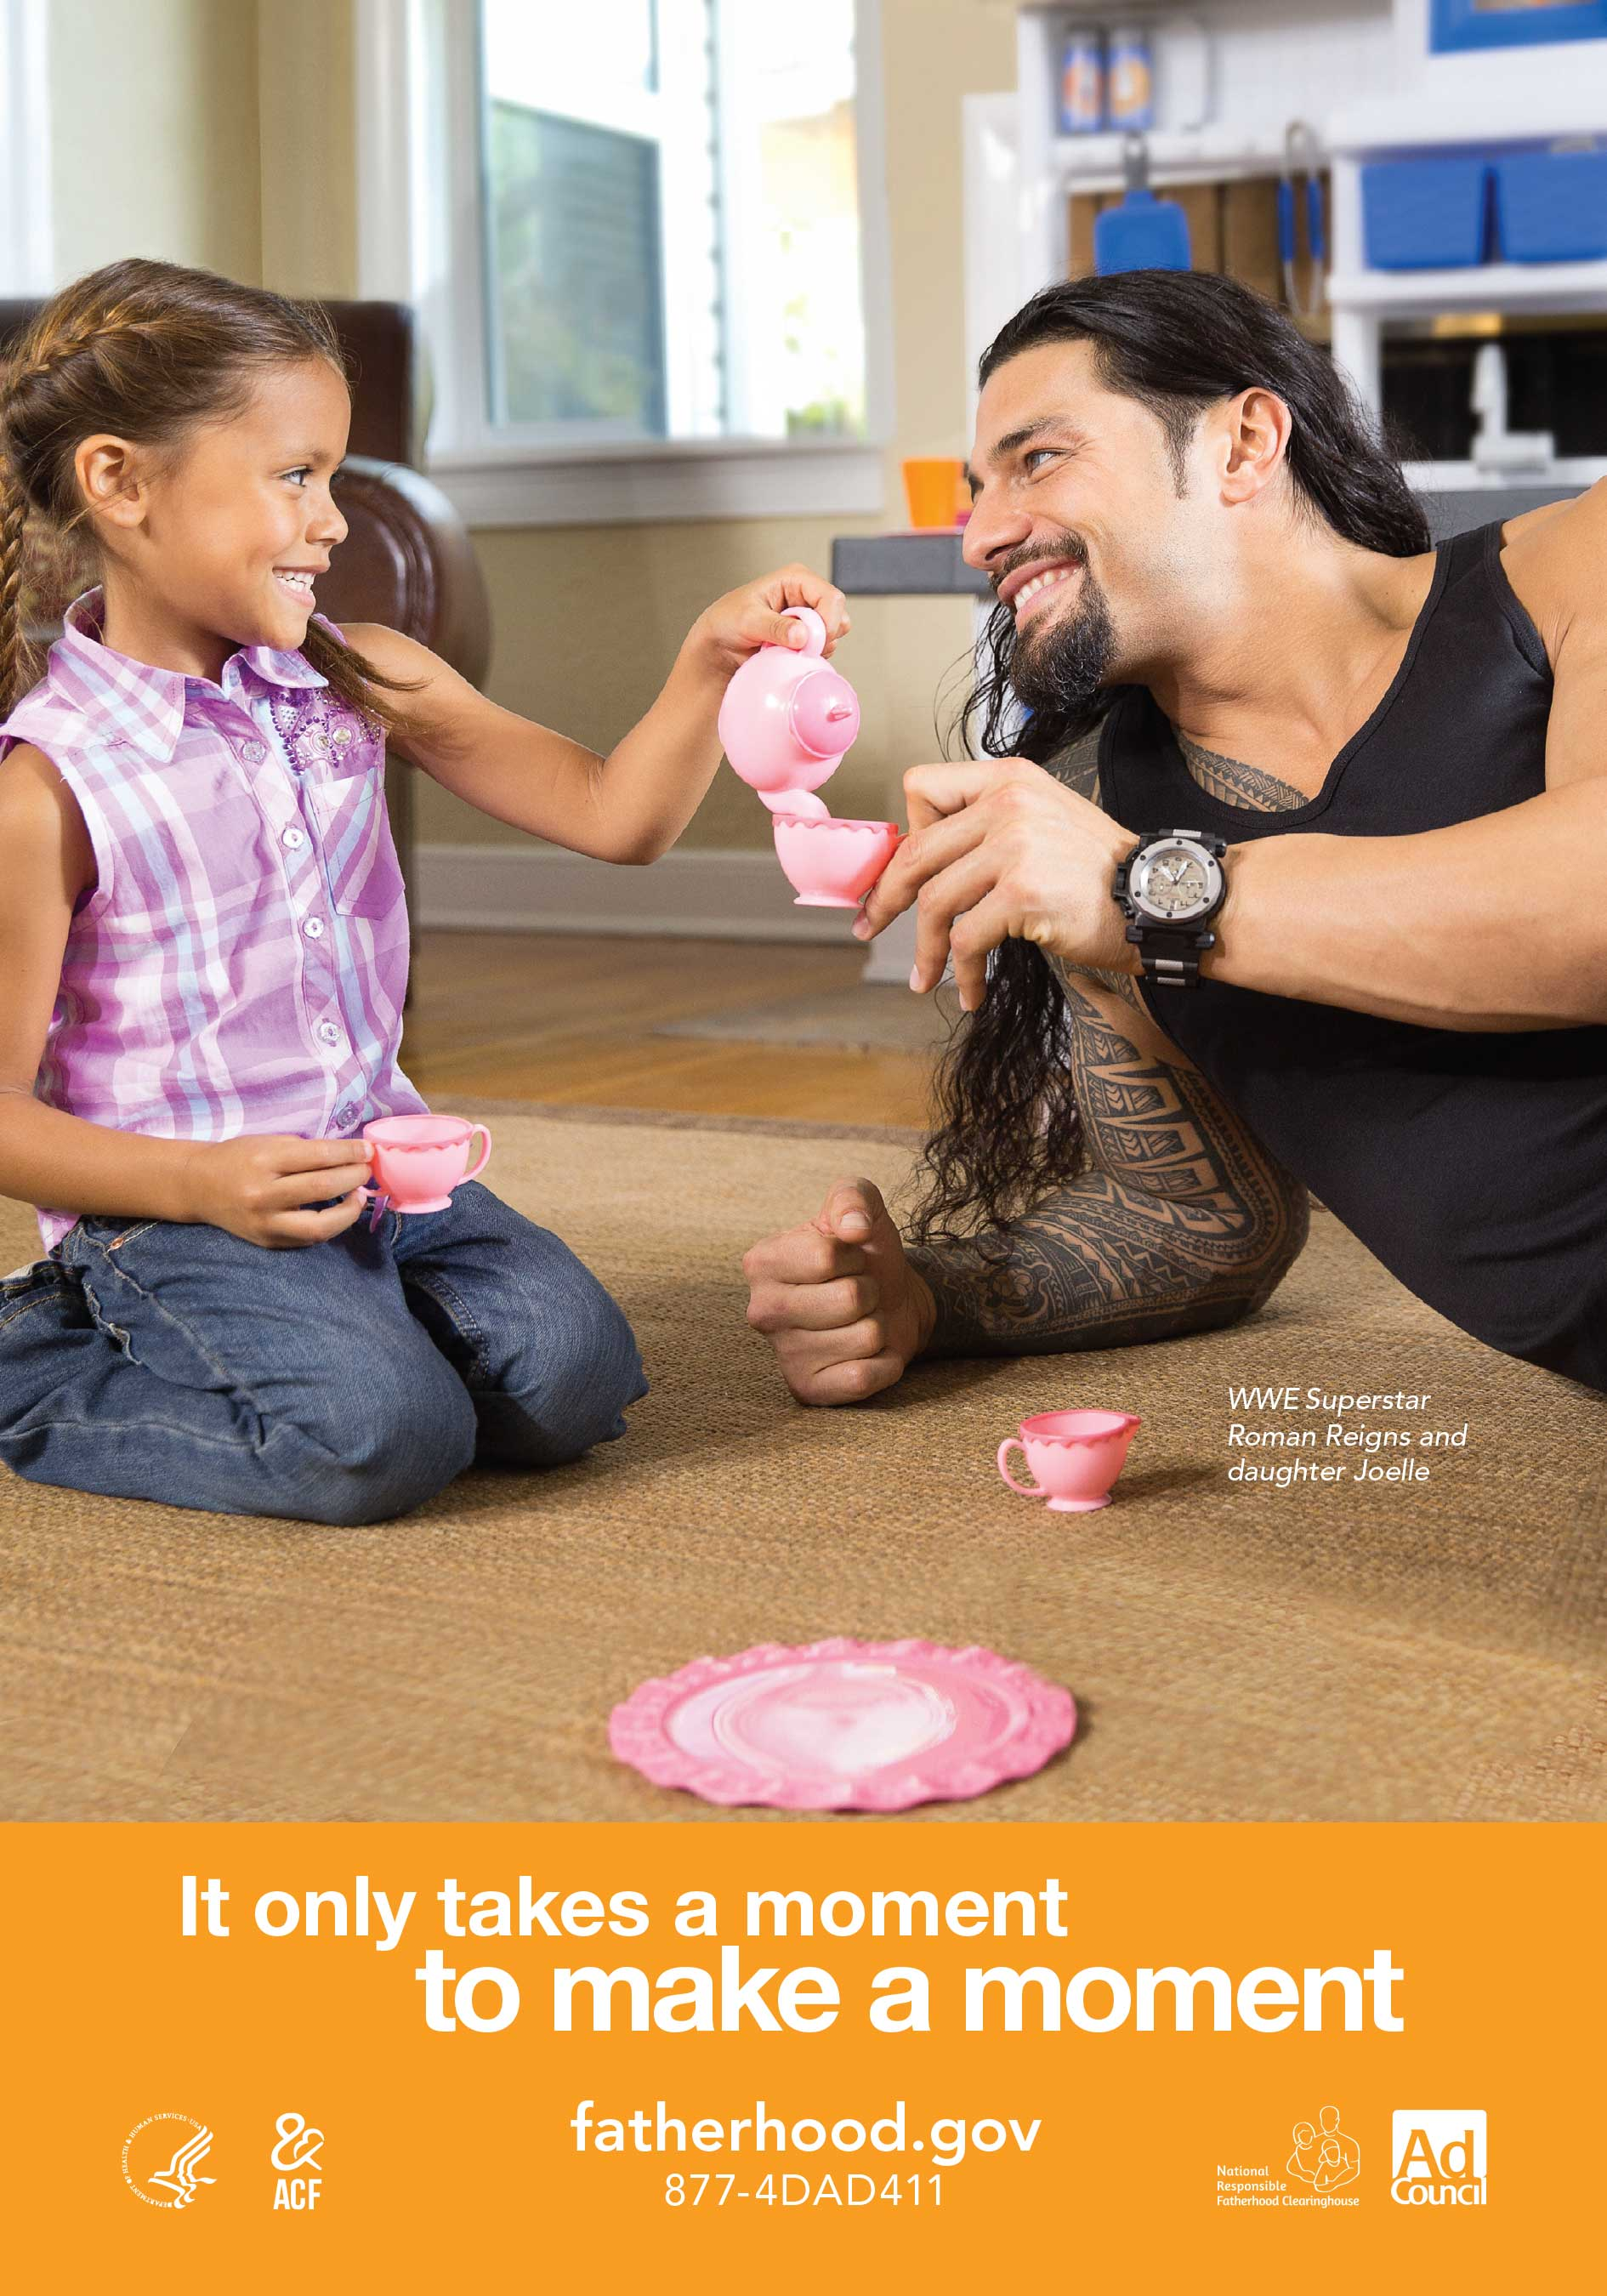 WWE Superstar Roman Reigns and daughter Joelle